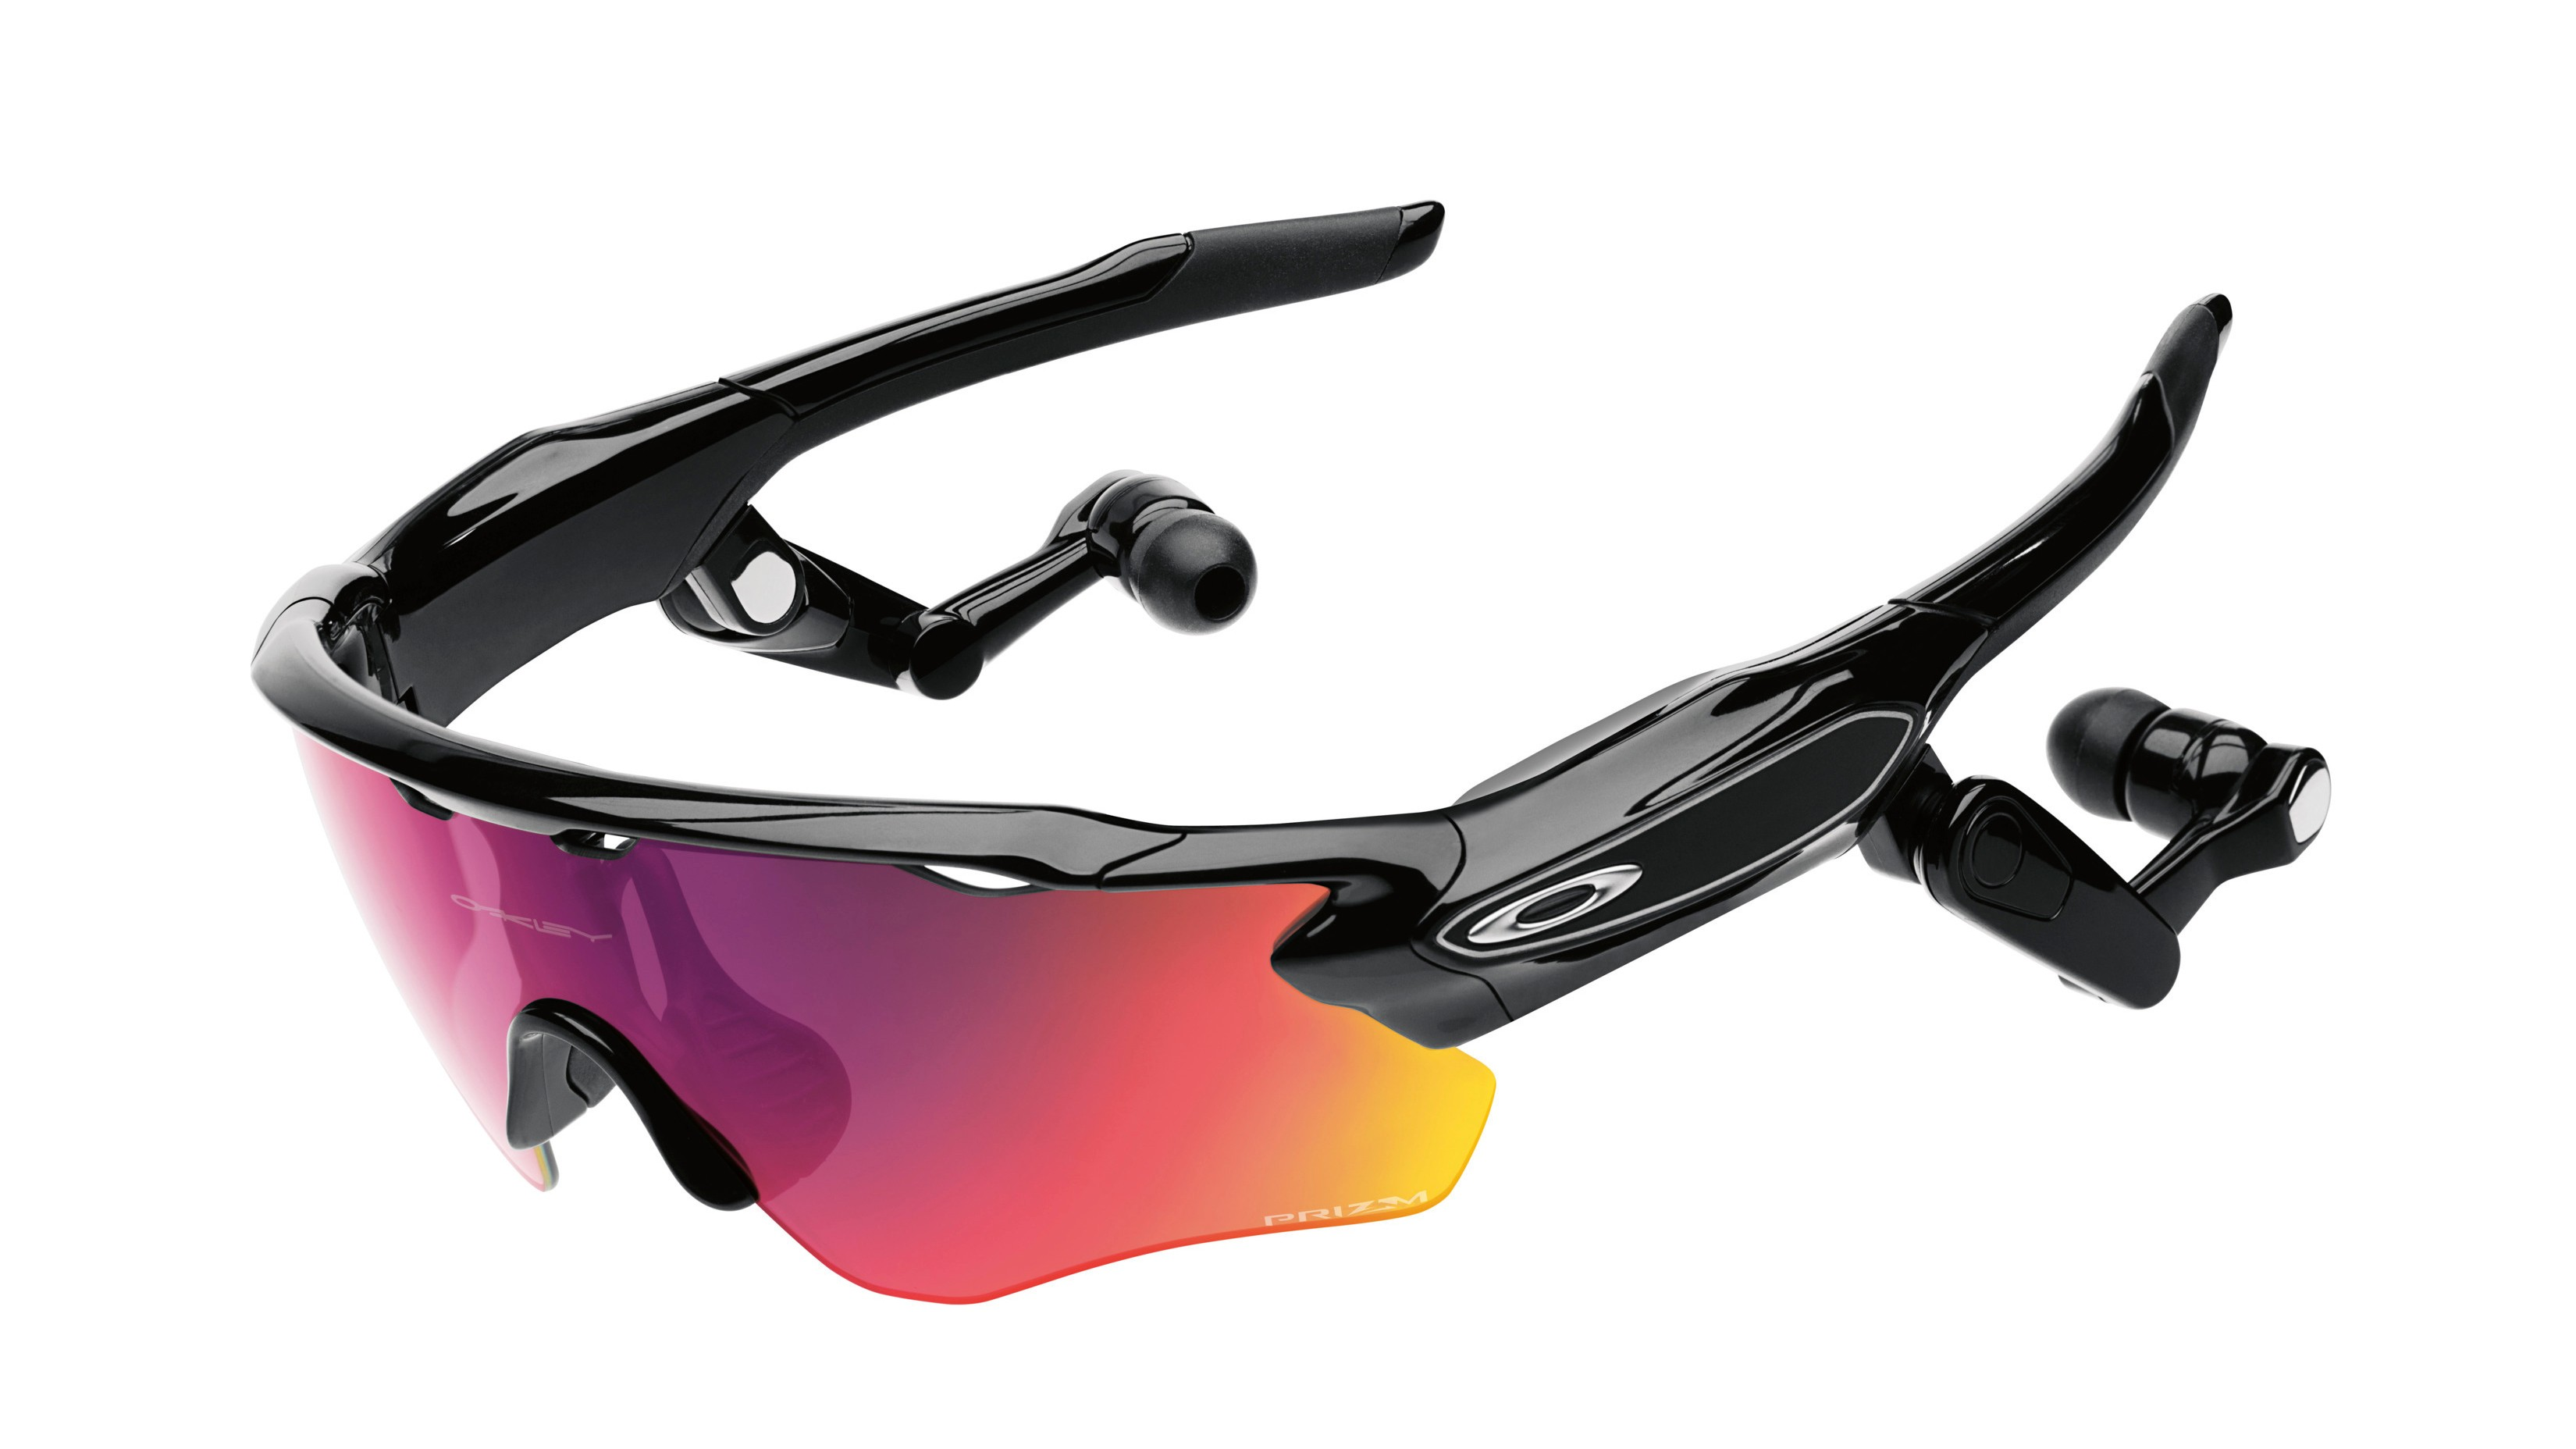 The Oakley Radar Pace designs sessions based on strength, stamina, speed and technique